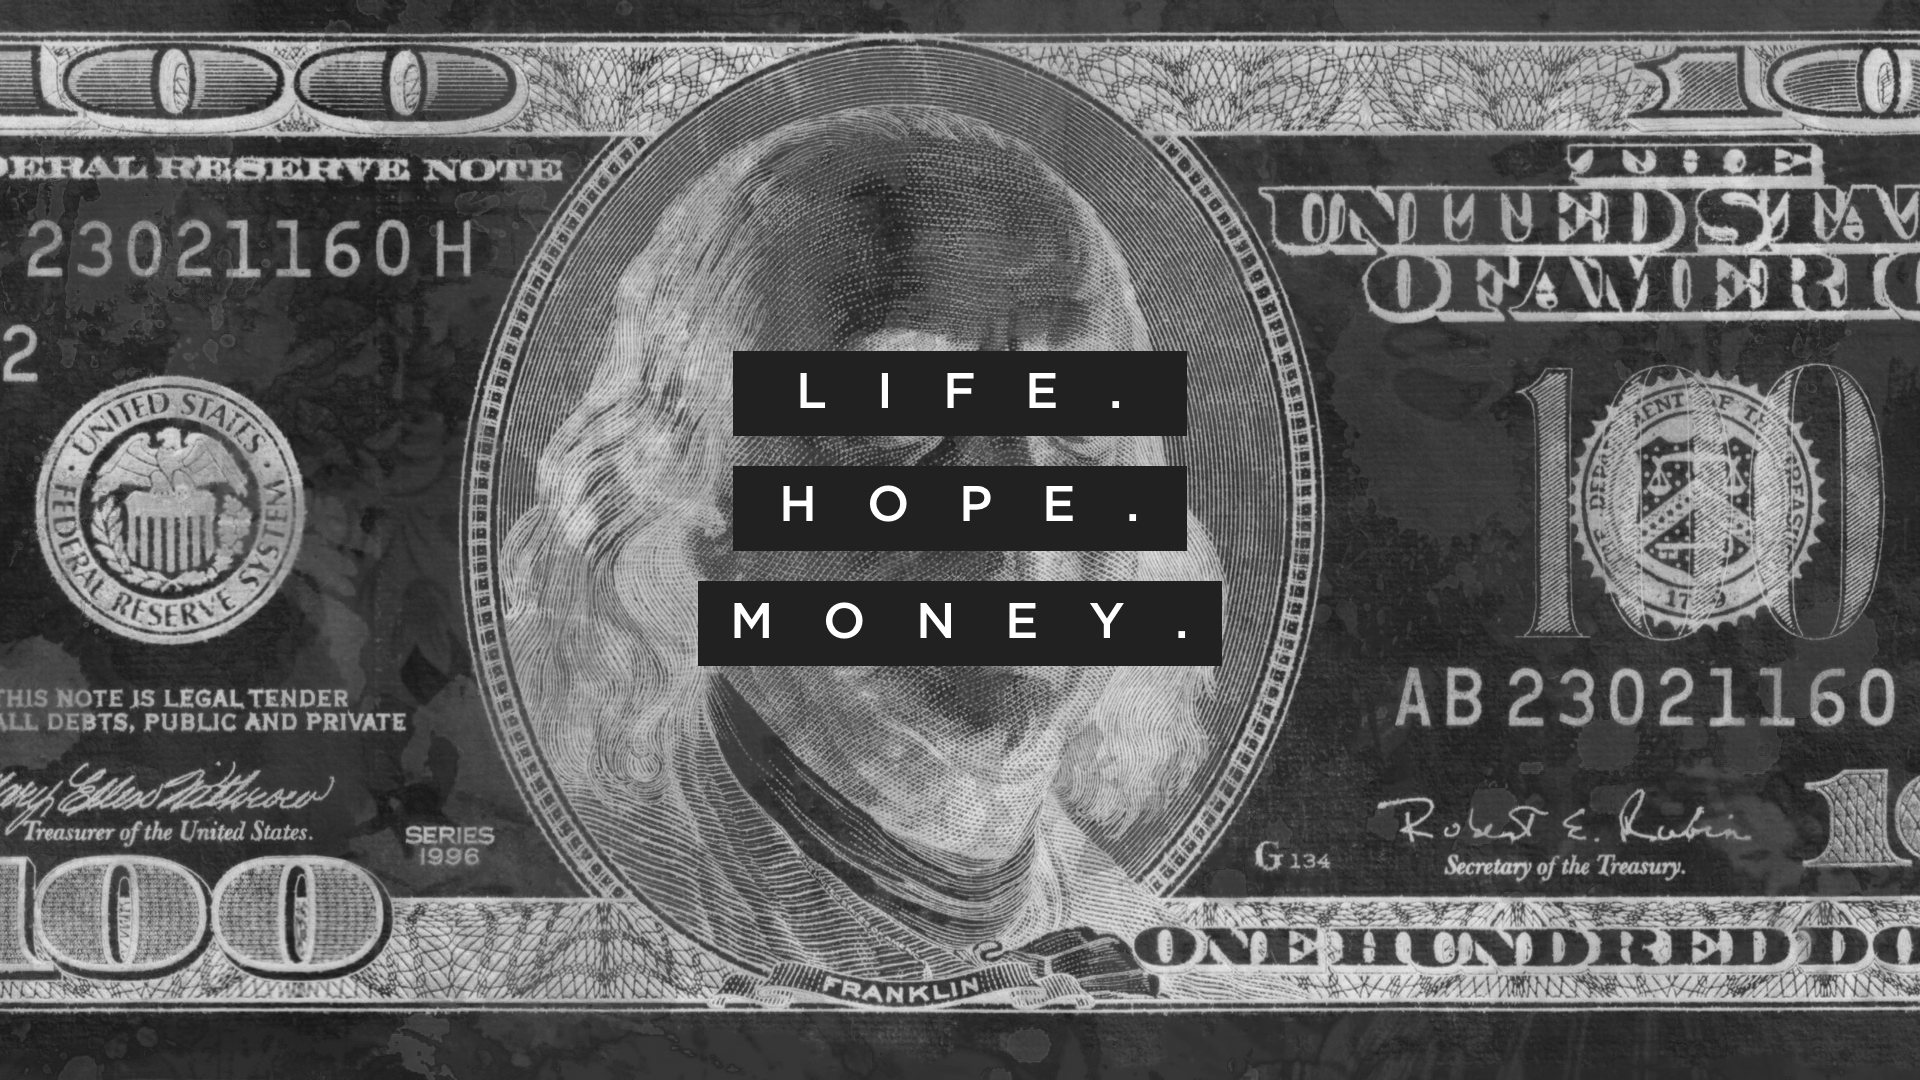 LIFE. HOPE. MONEY. Main.jpg